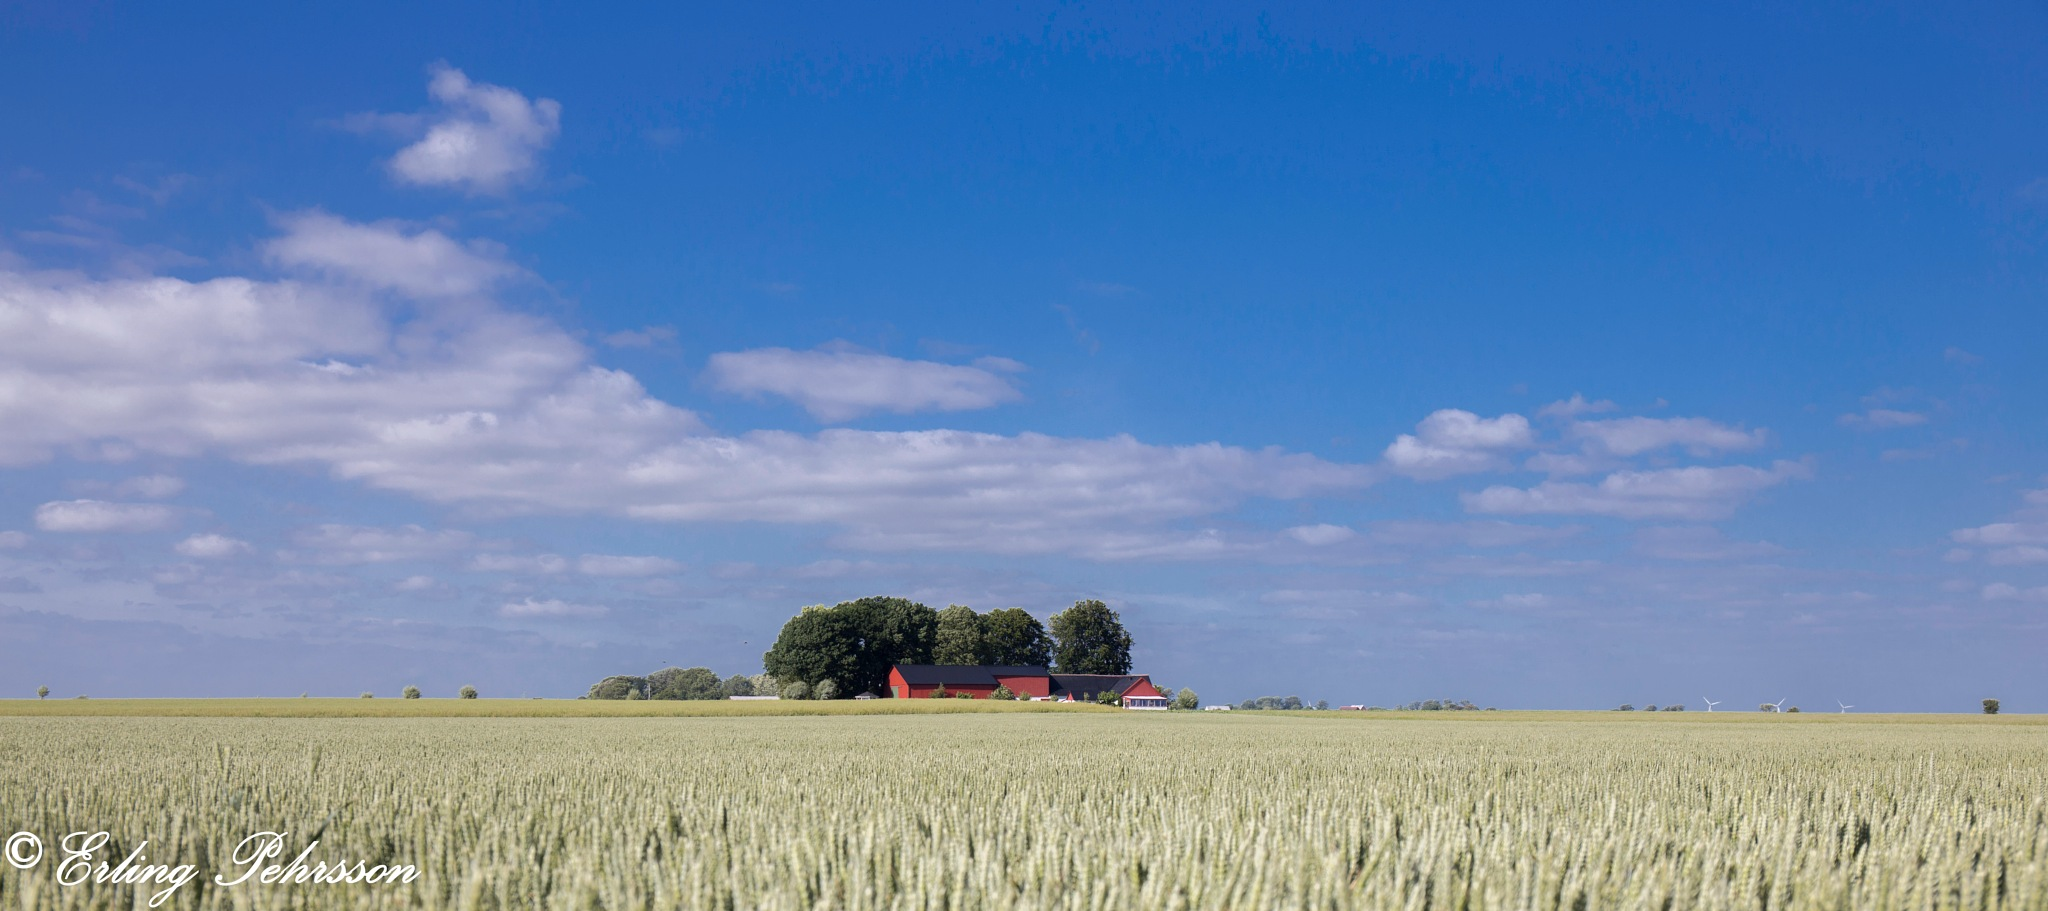 Skane Sweden by erling.pehrsson